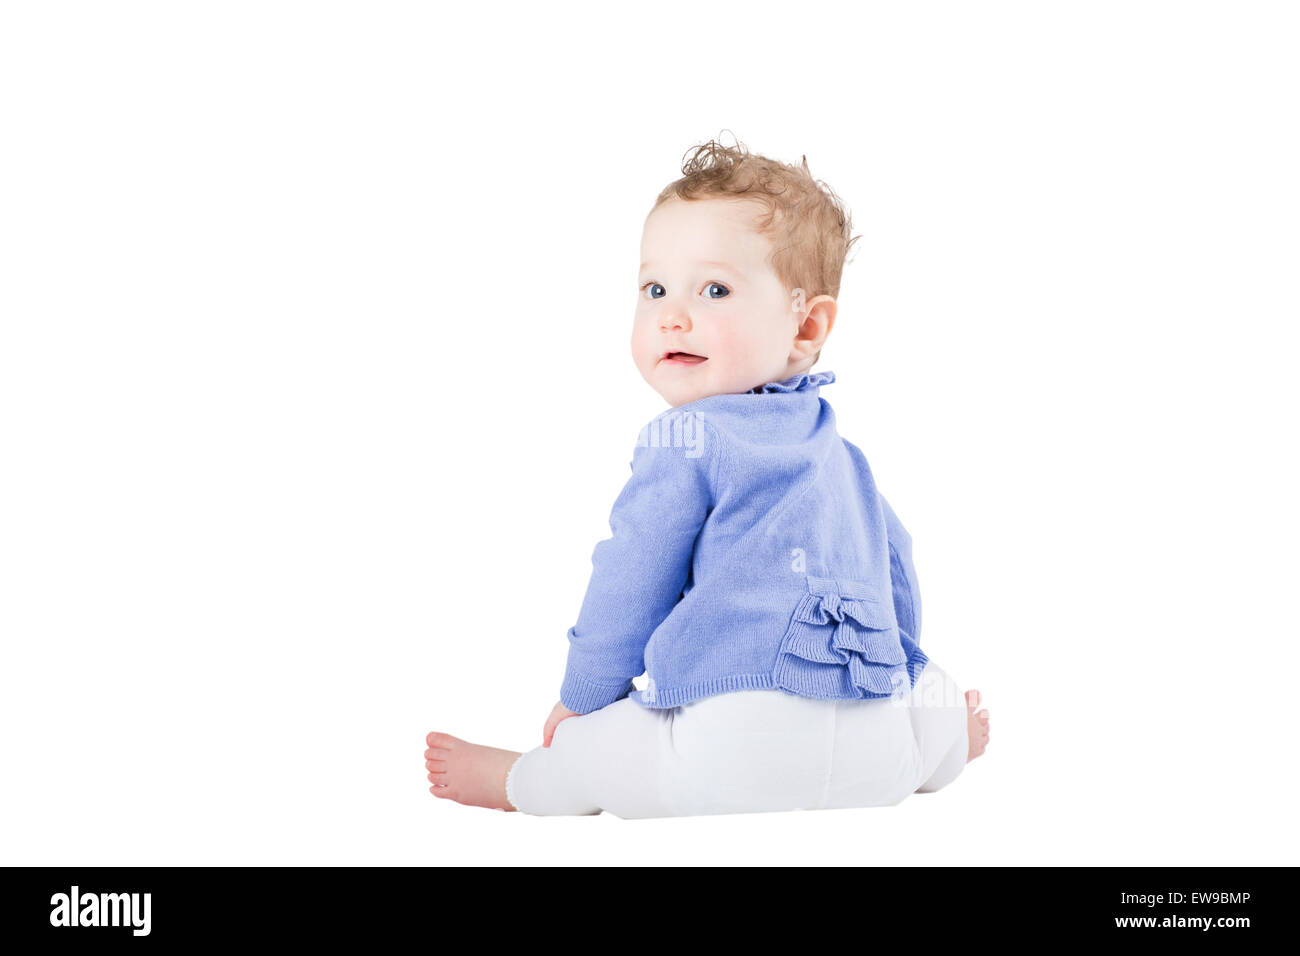 Sweet baby girl sitting and watching over her shoulder, isolated on white - Stock Image